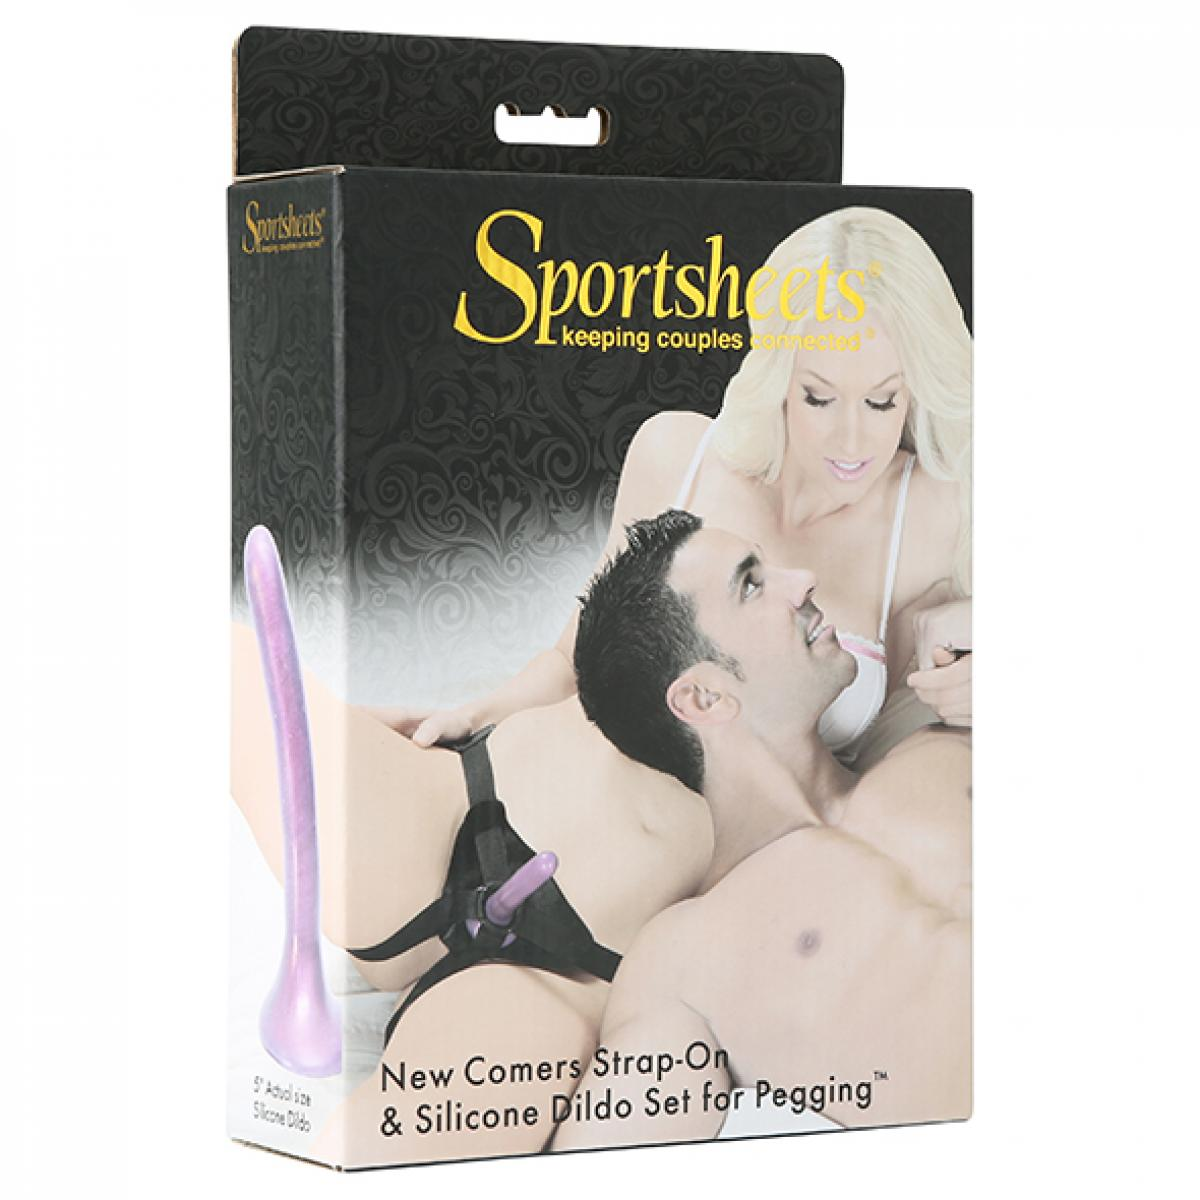 Sportsheets New Cummers Strap-On Dildo Kit - 13.33cm - 5.3 inch